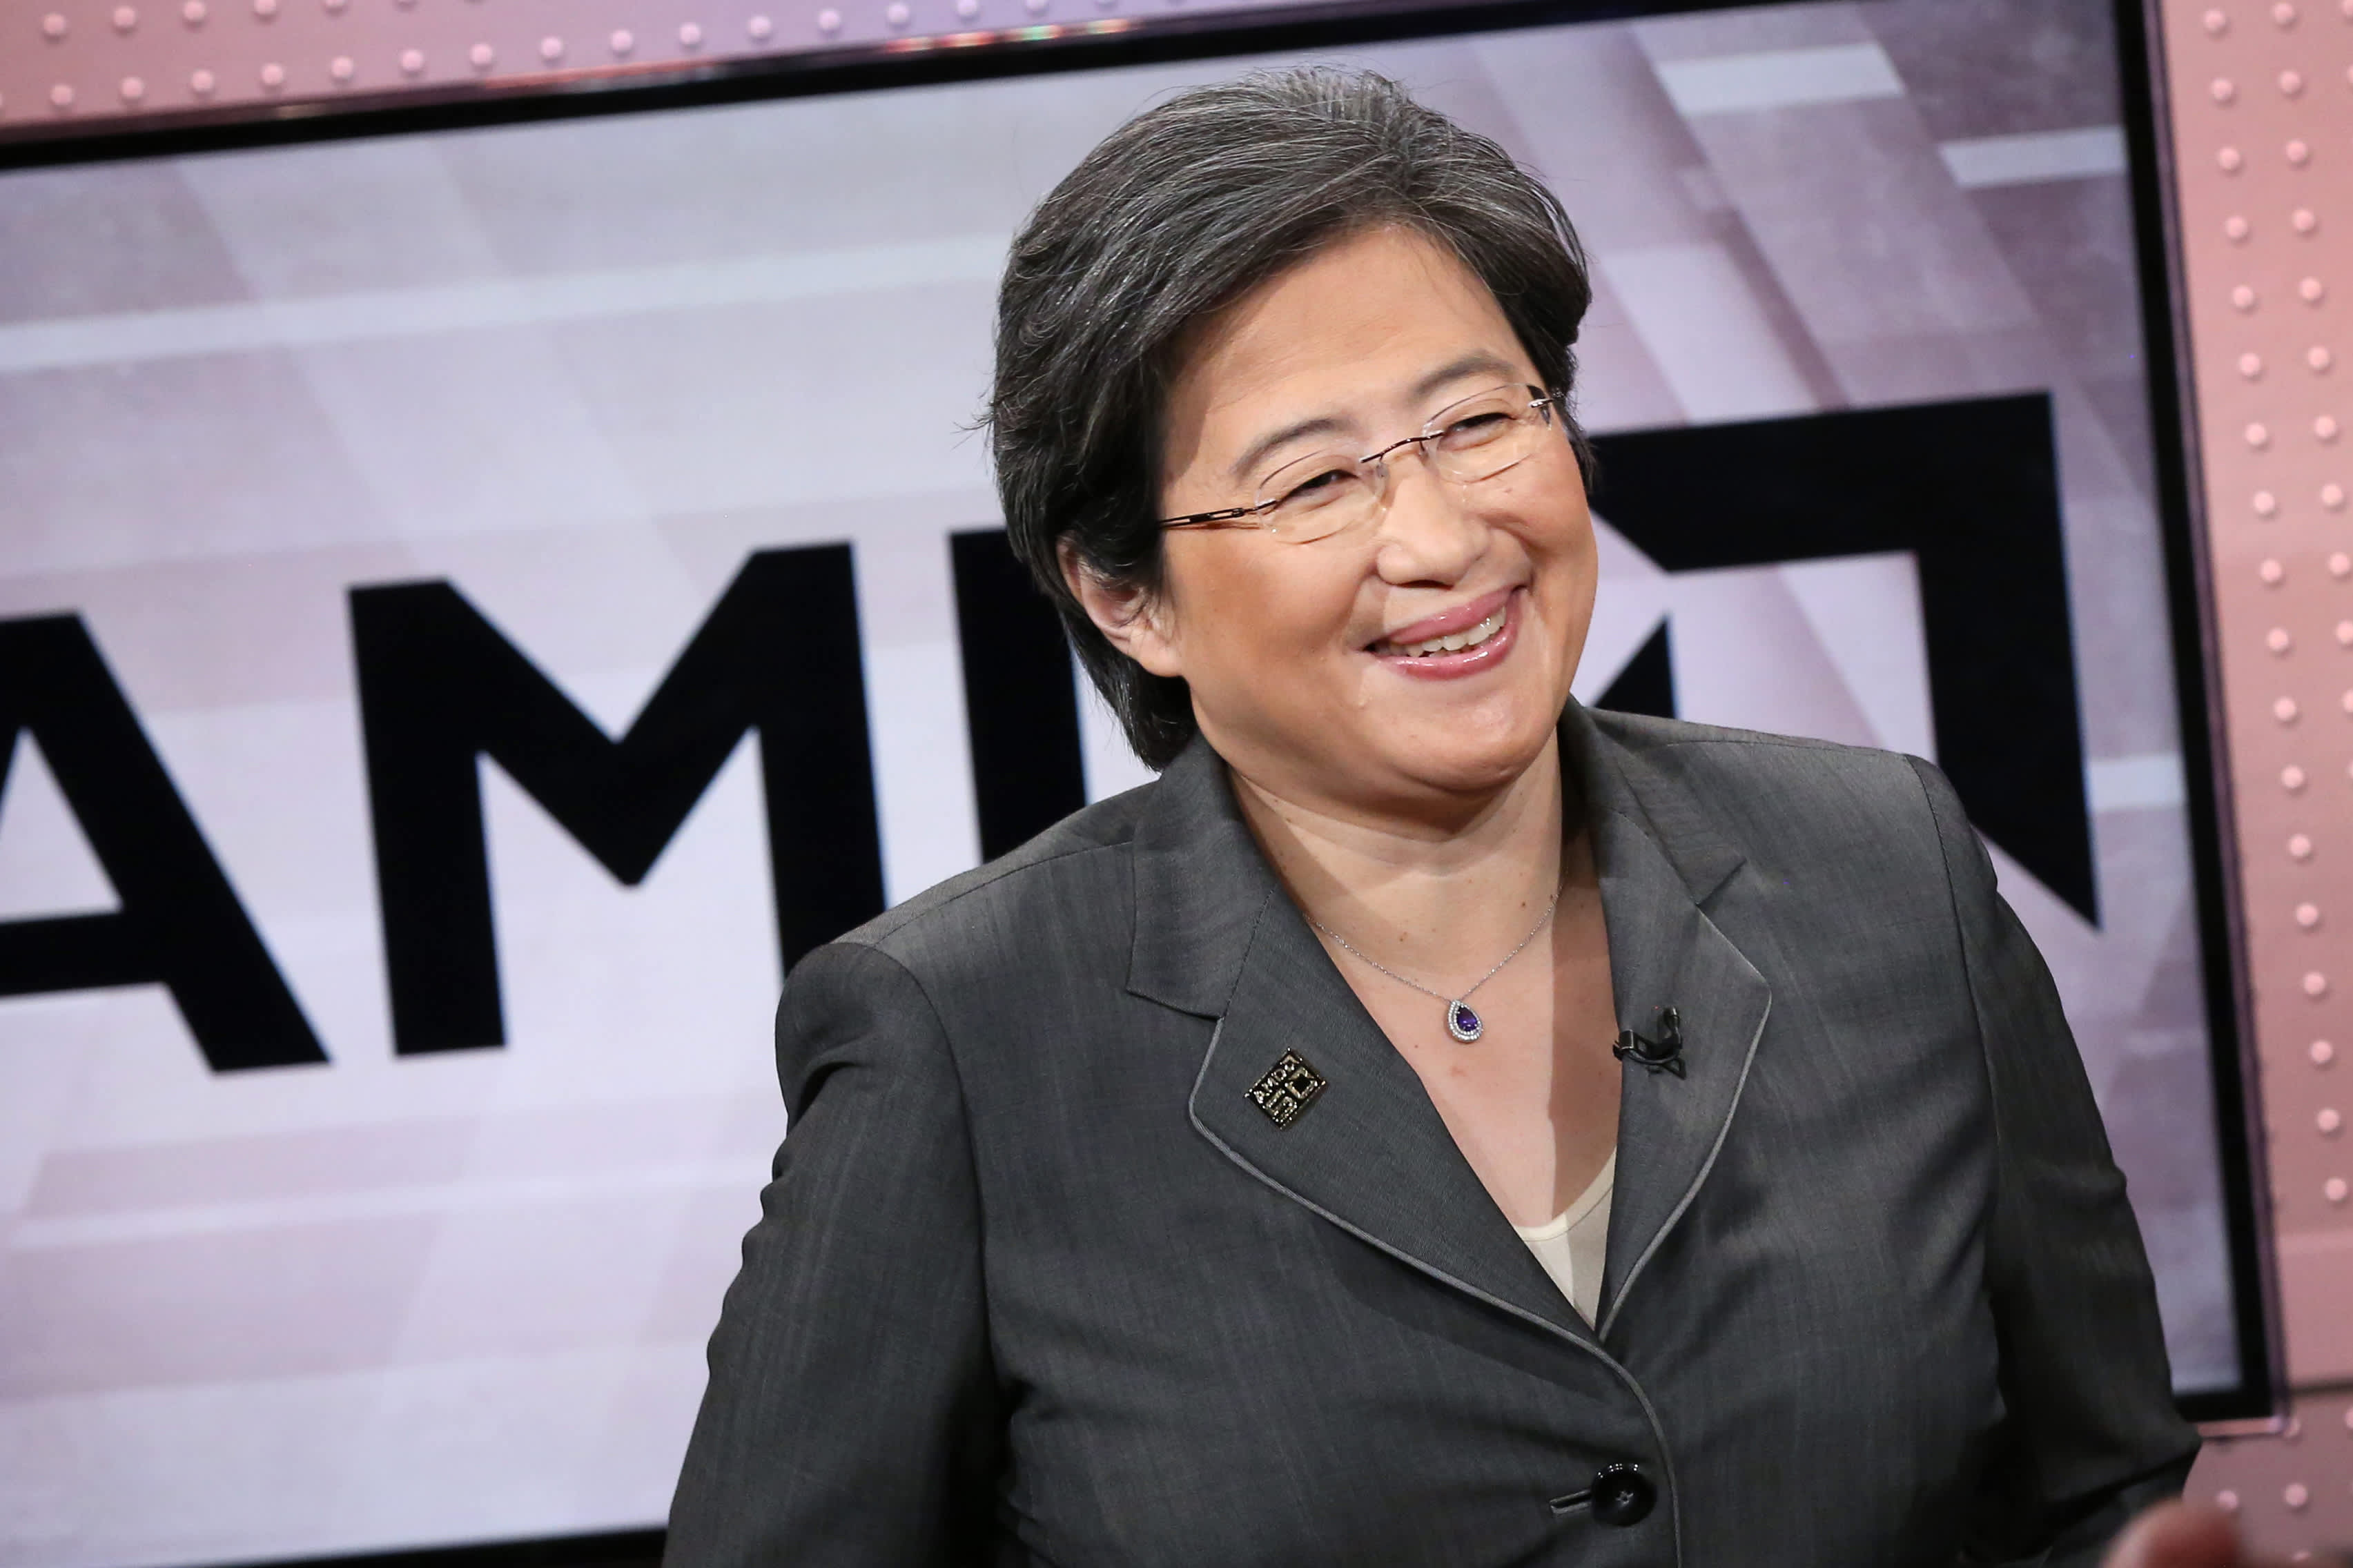 Intel CEO change gives investors buying opportunity in AMD Jim Cramer says – CNBC